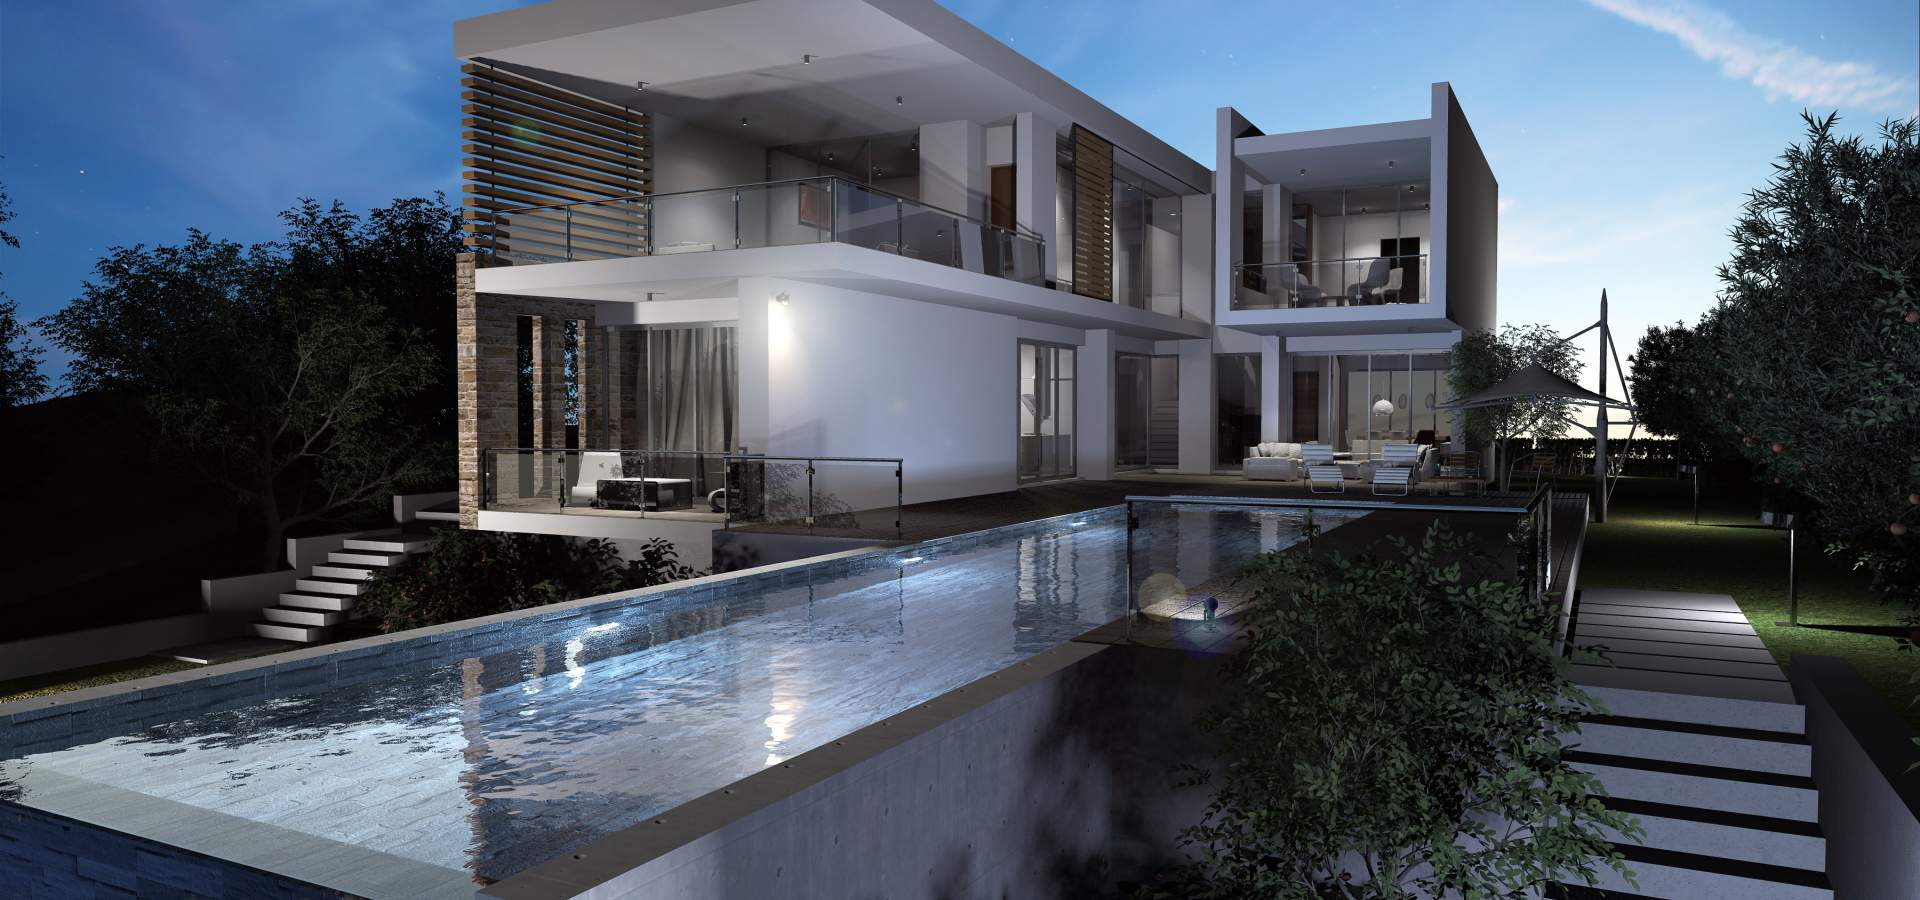 Konia Modern Luxury Residences Exterior Design